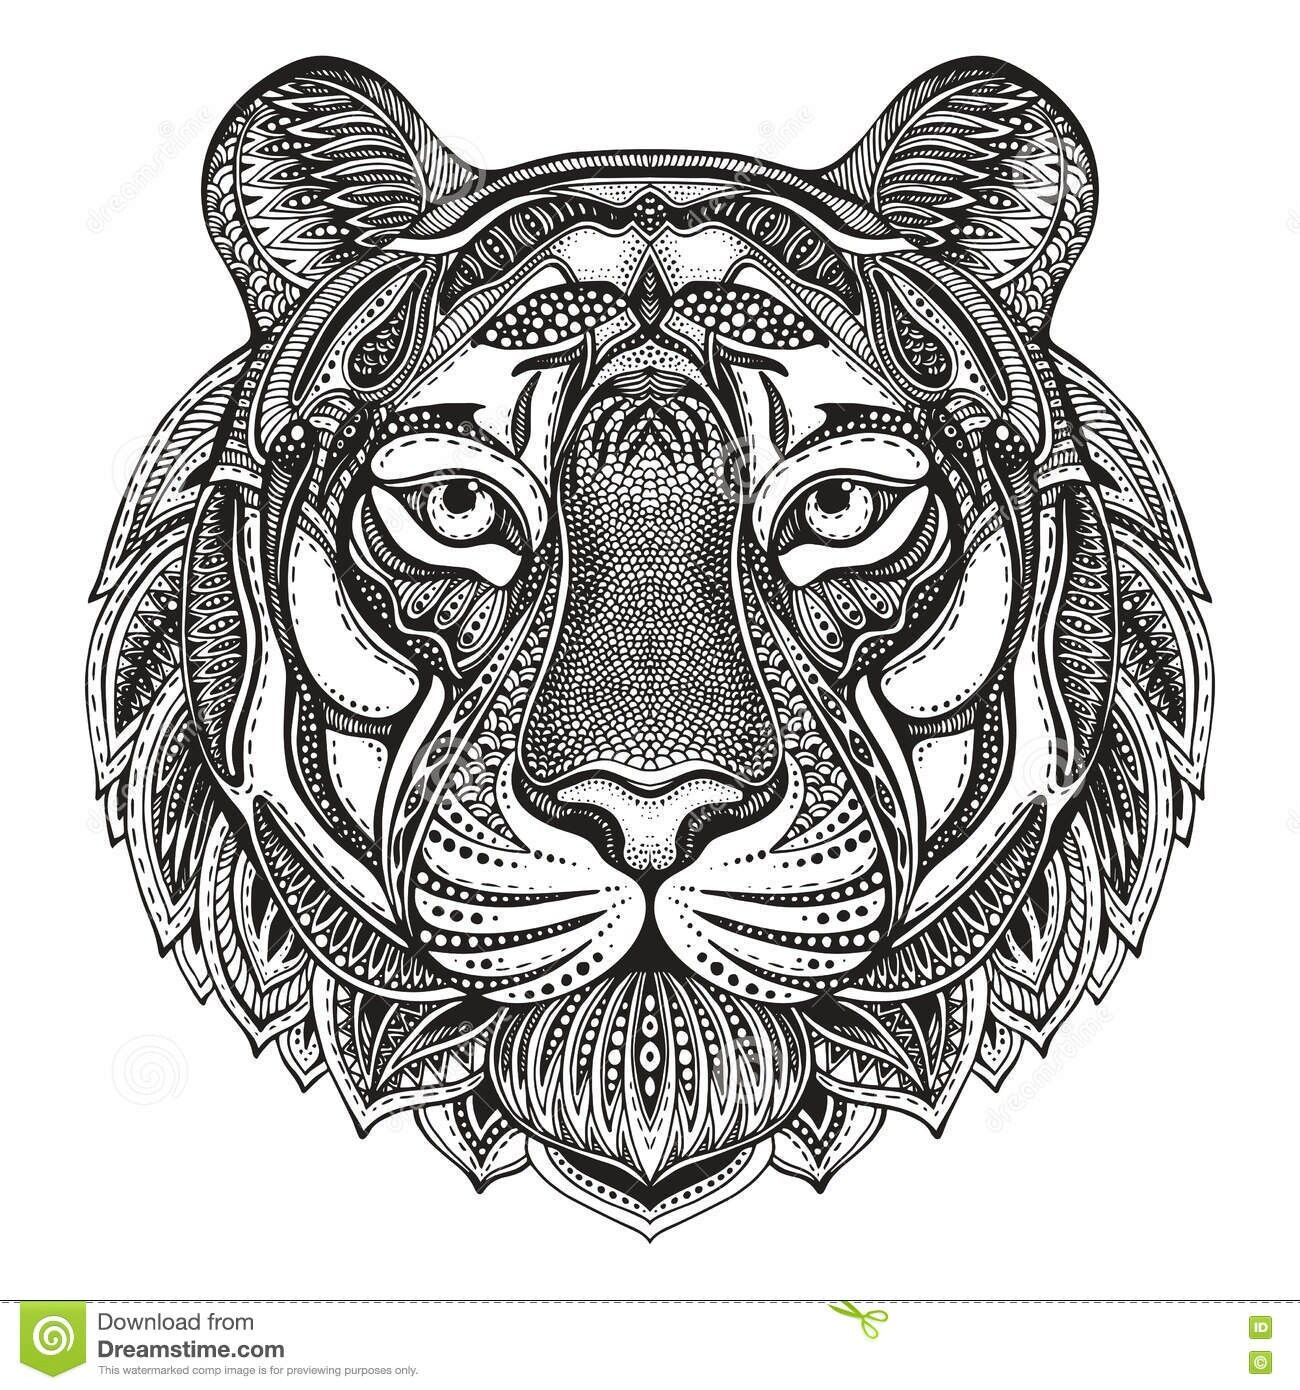 Pin by beth conroy on color cats pinterest dessin tigre tatouage tigre and dessin tatouage - Tigre mandala ...